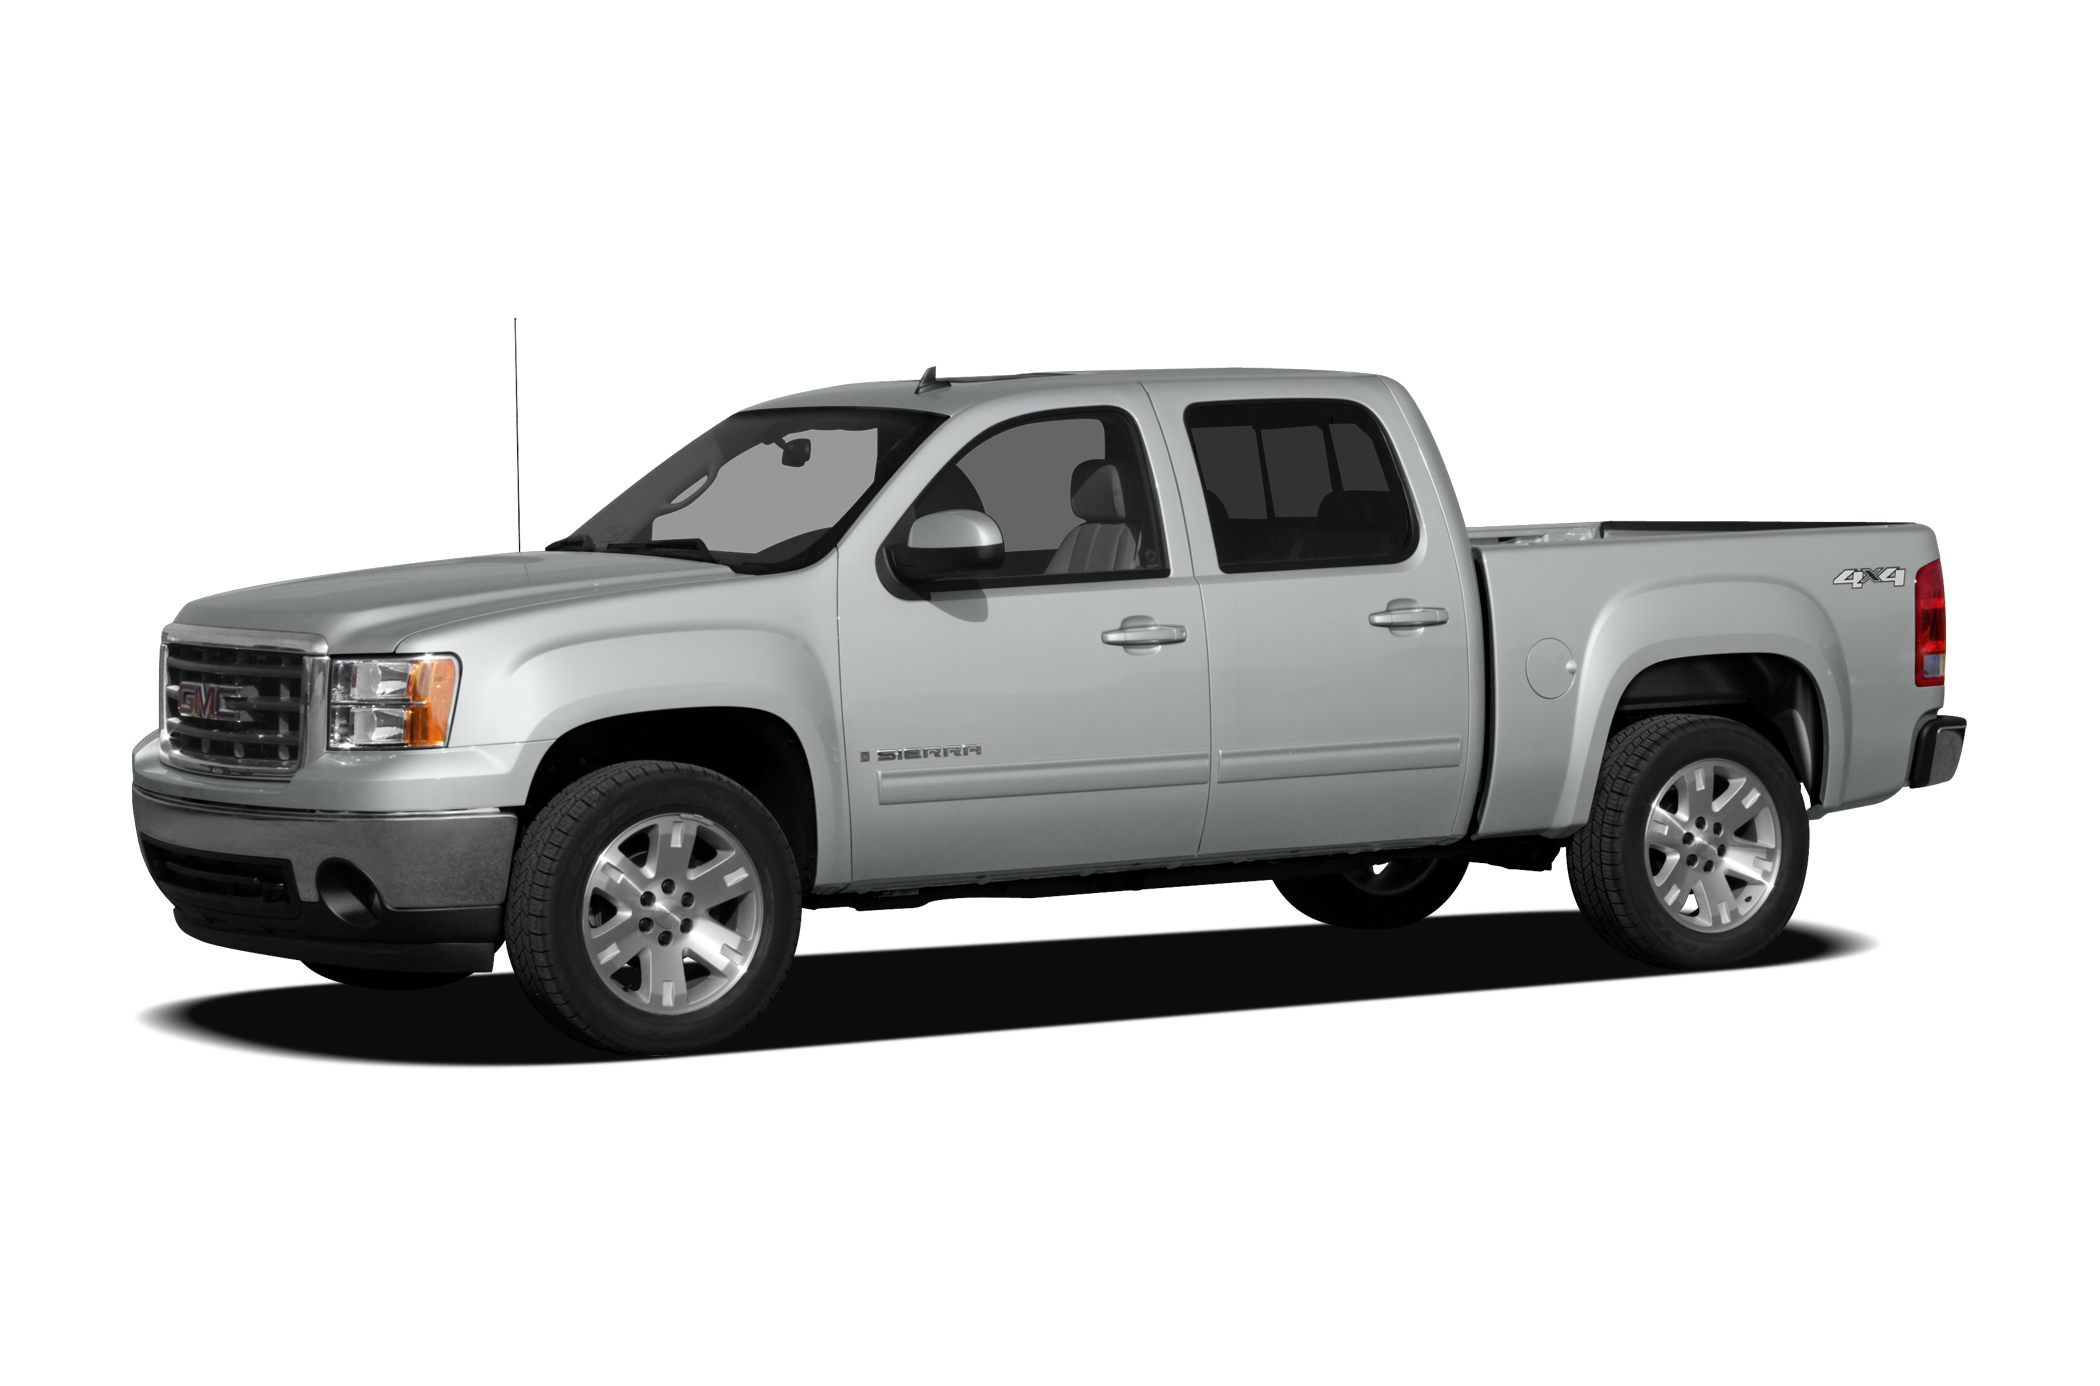 2012 GMC Sierra 1500 SLE ITS OUR 50TH ANNIVERSARY HERE AT MARTYS AND TO CELEBRATE WERE OFFERING